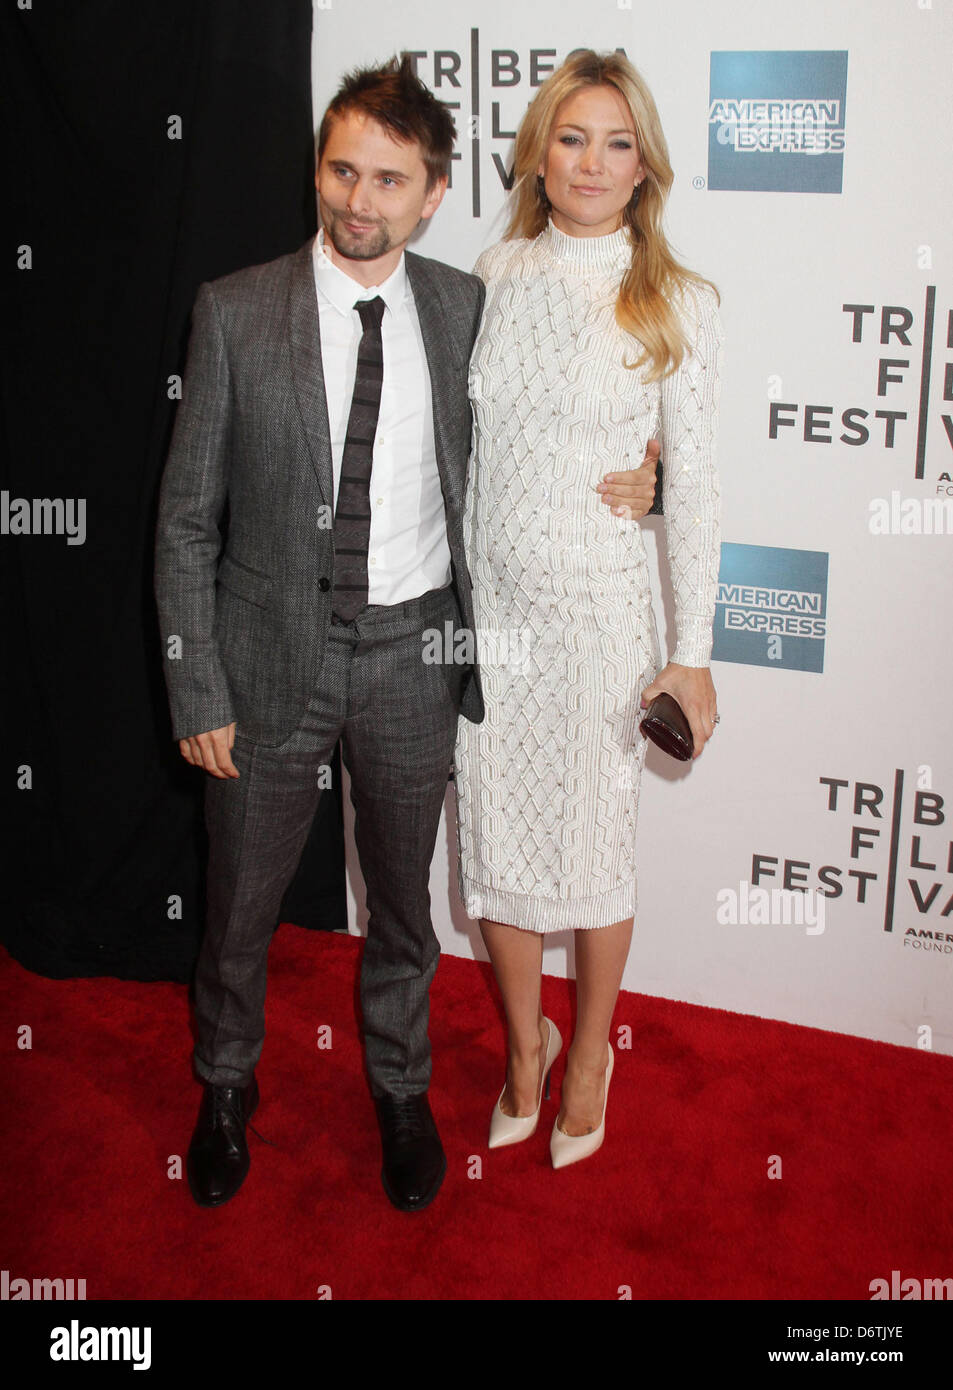 New york us april 22 2013 muse singer matt bellamy and actress new york us april 22 2013 muse singer matt bellamy and actress kate hudson attend the premiere of the reluctant fundamentist held during the tribeca voltagebd Image collections